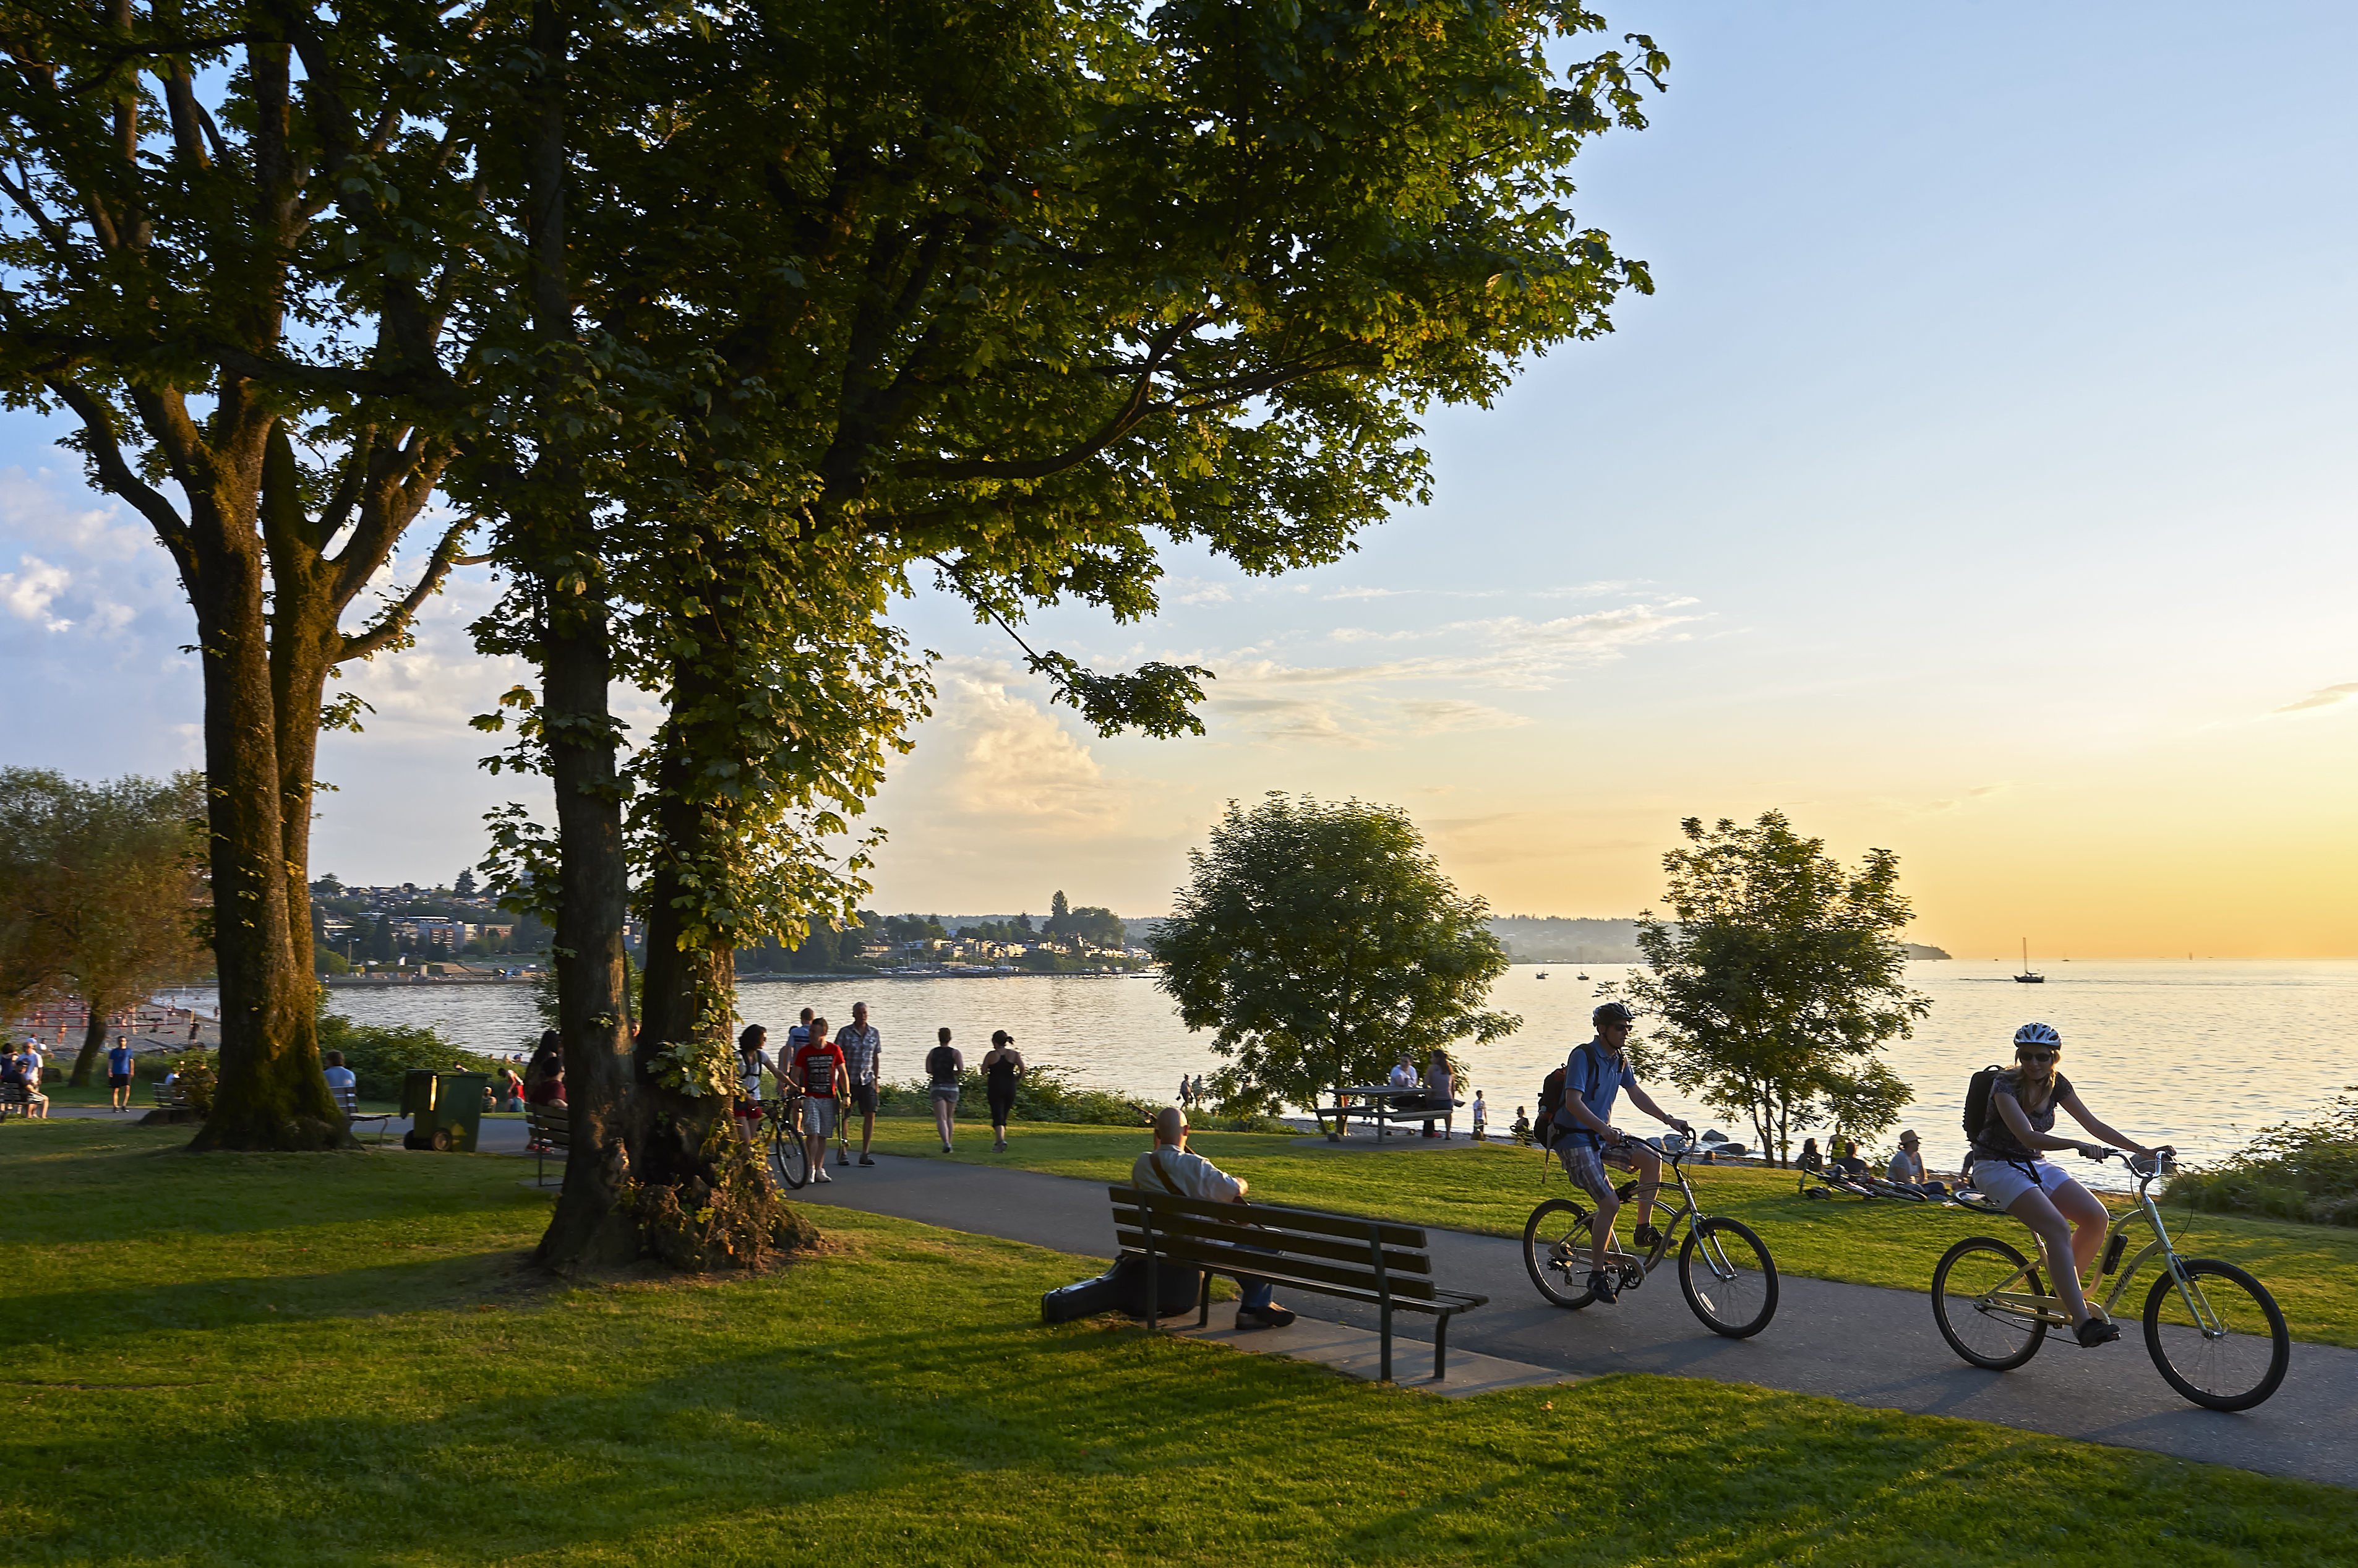 Young couple cycling, others walking or jogging late afternoon and enjoying the sunset at a lakefront park